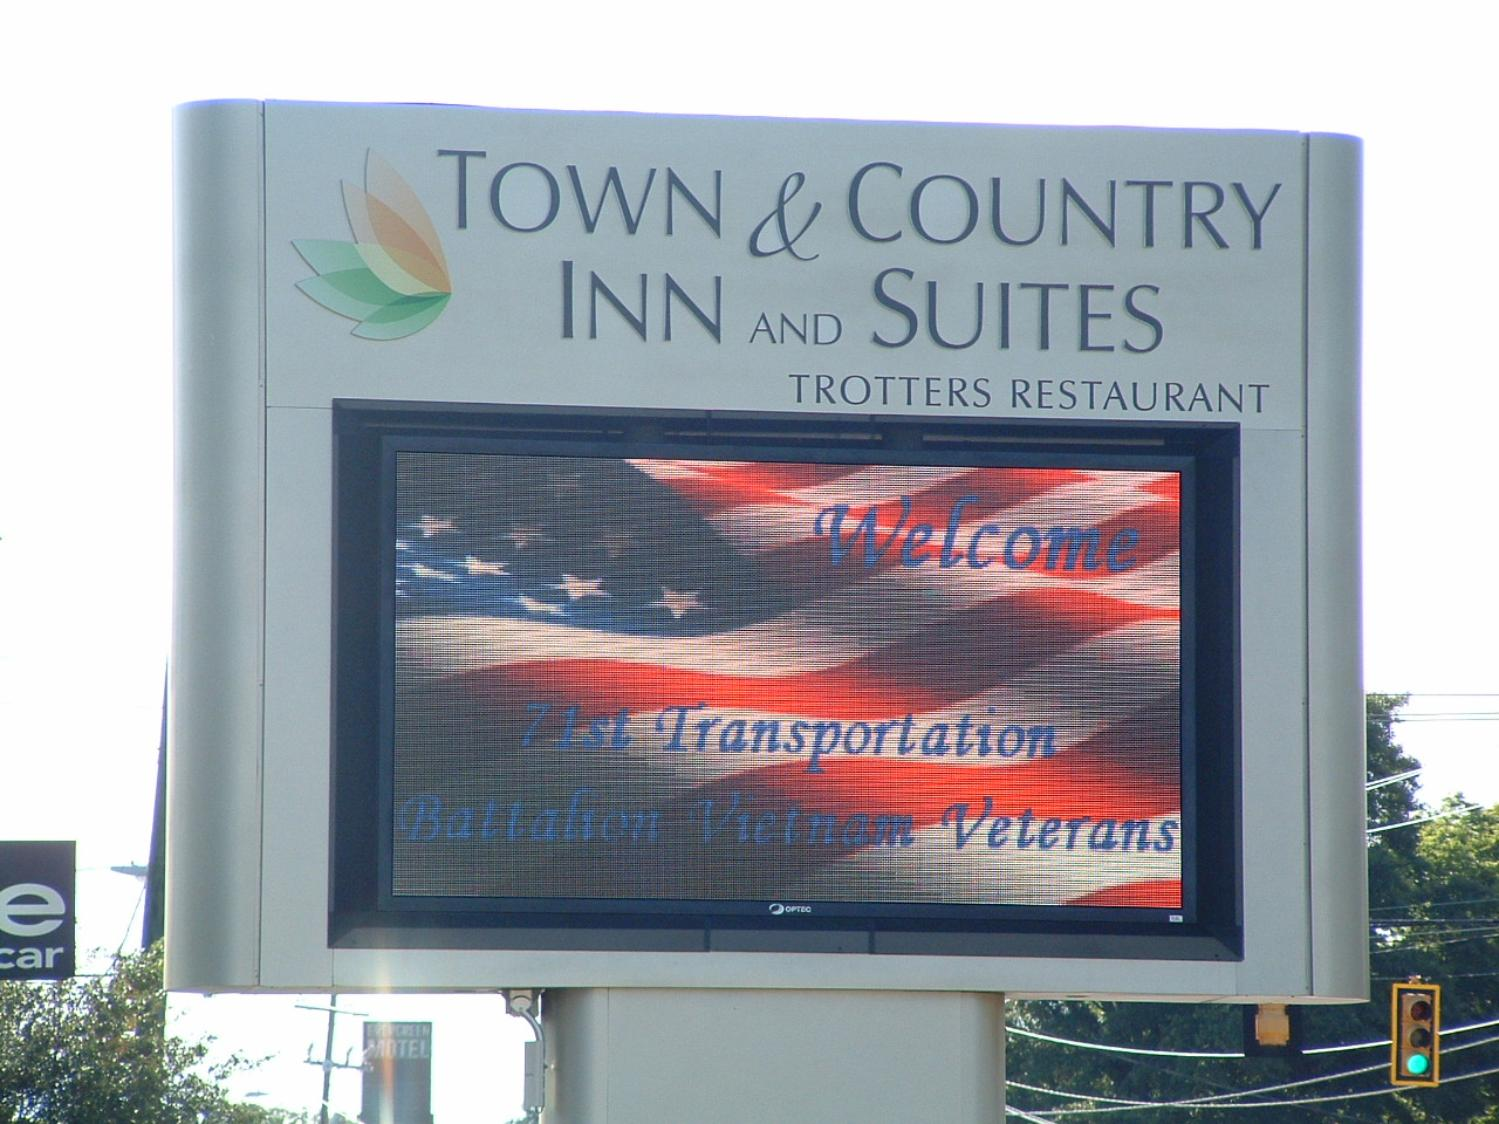 Town & Country Inn & Suites - Photo courtesy of Randy & Jan Richmond.